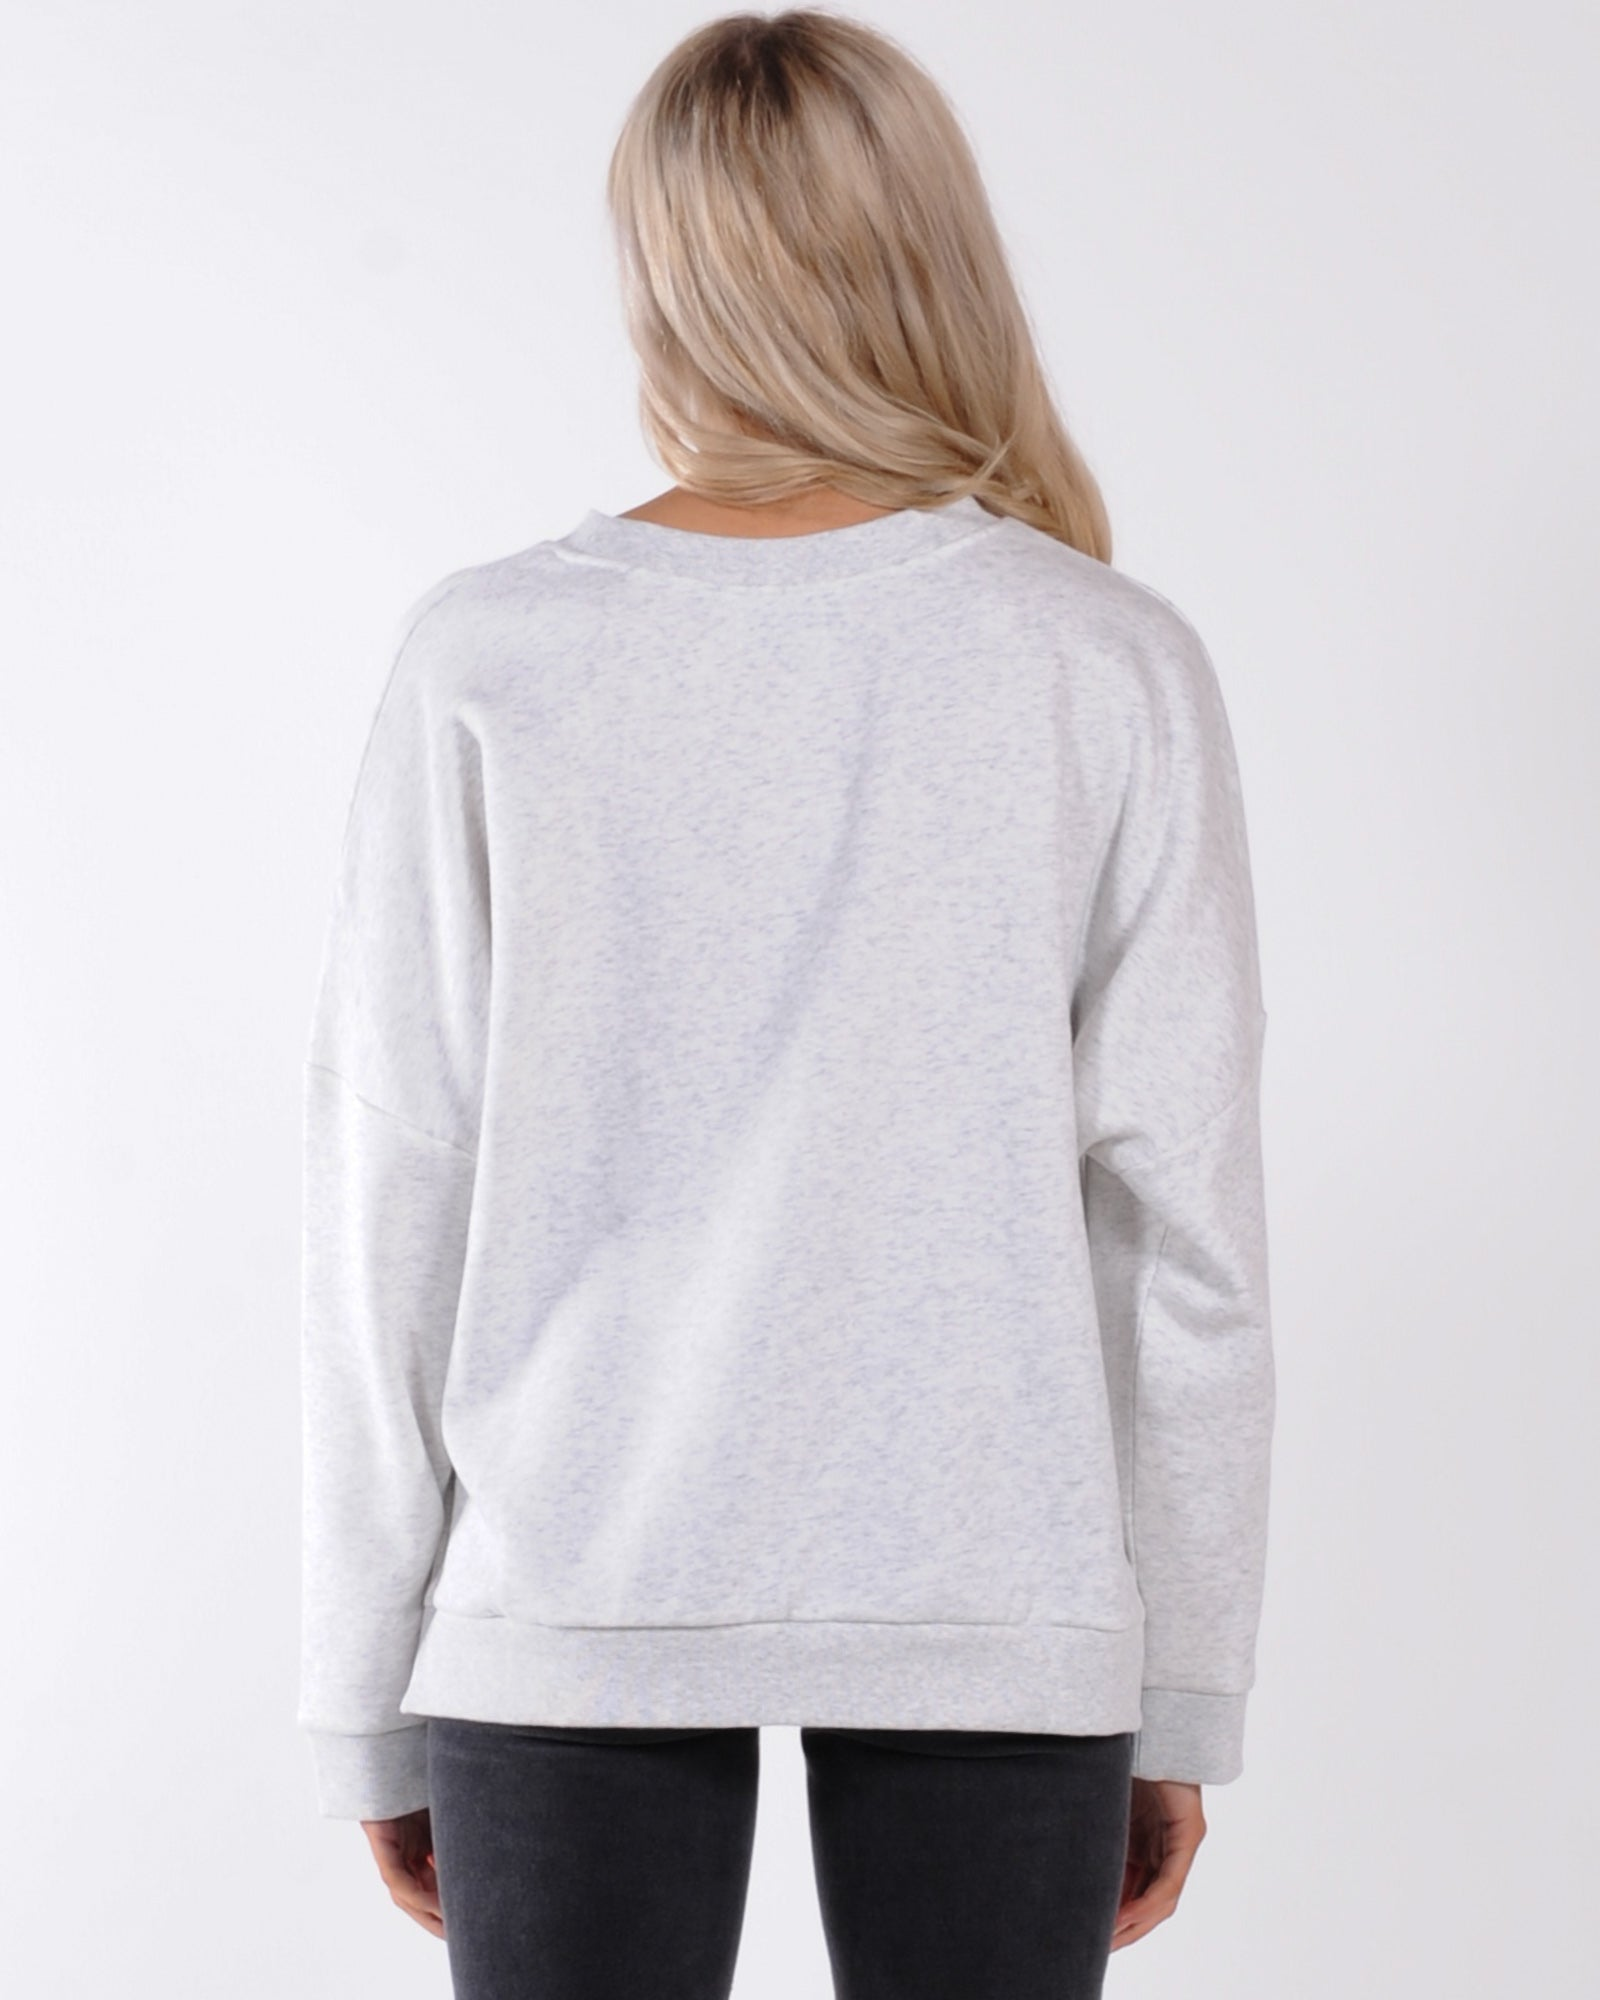 Nude Lucy Carter Classic Oversized Sweat - Snow Marle